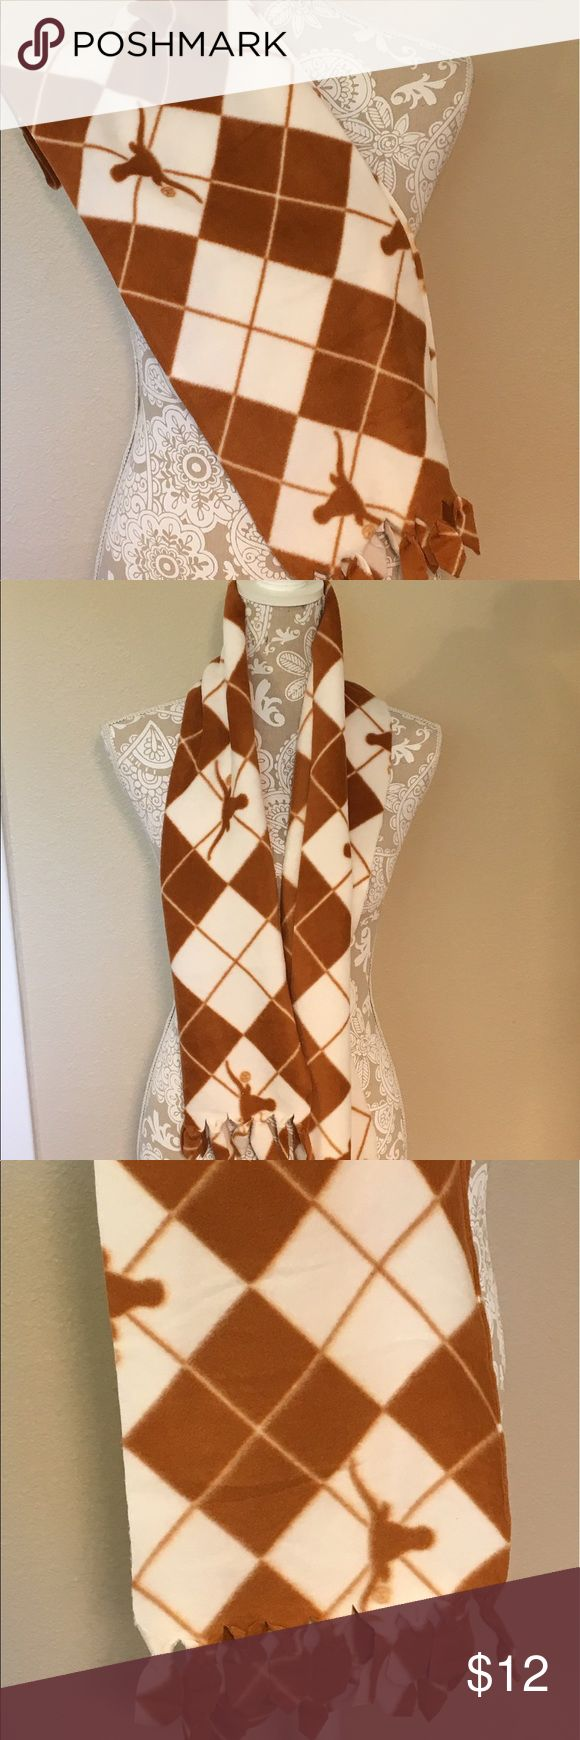 NWOT hand made UT University Texas scarf w/ fringe Handmade University of Texas UT scarf with fringe on each end. White and burnt orange with UT longhorn logo. New, never used, perfect condition, smoke free home. #UT #university #texas #scarf #accessory #white #orange #new #handmade ❌no trades❌ Accessories Scarves & Wraps